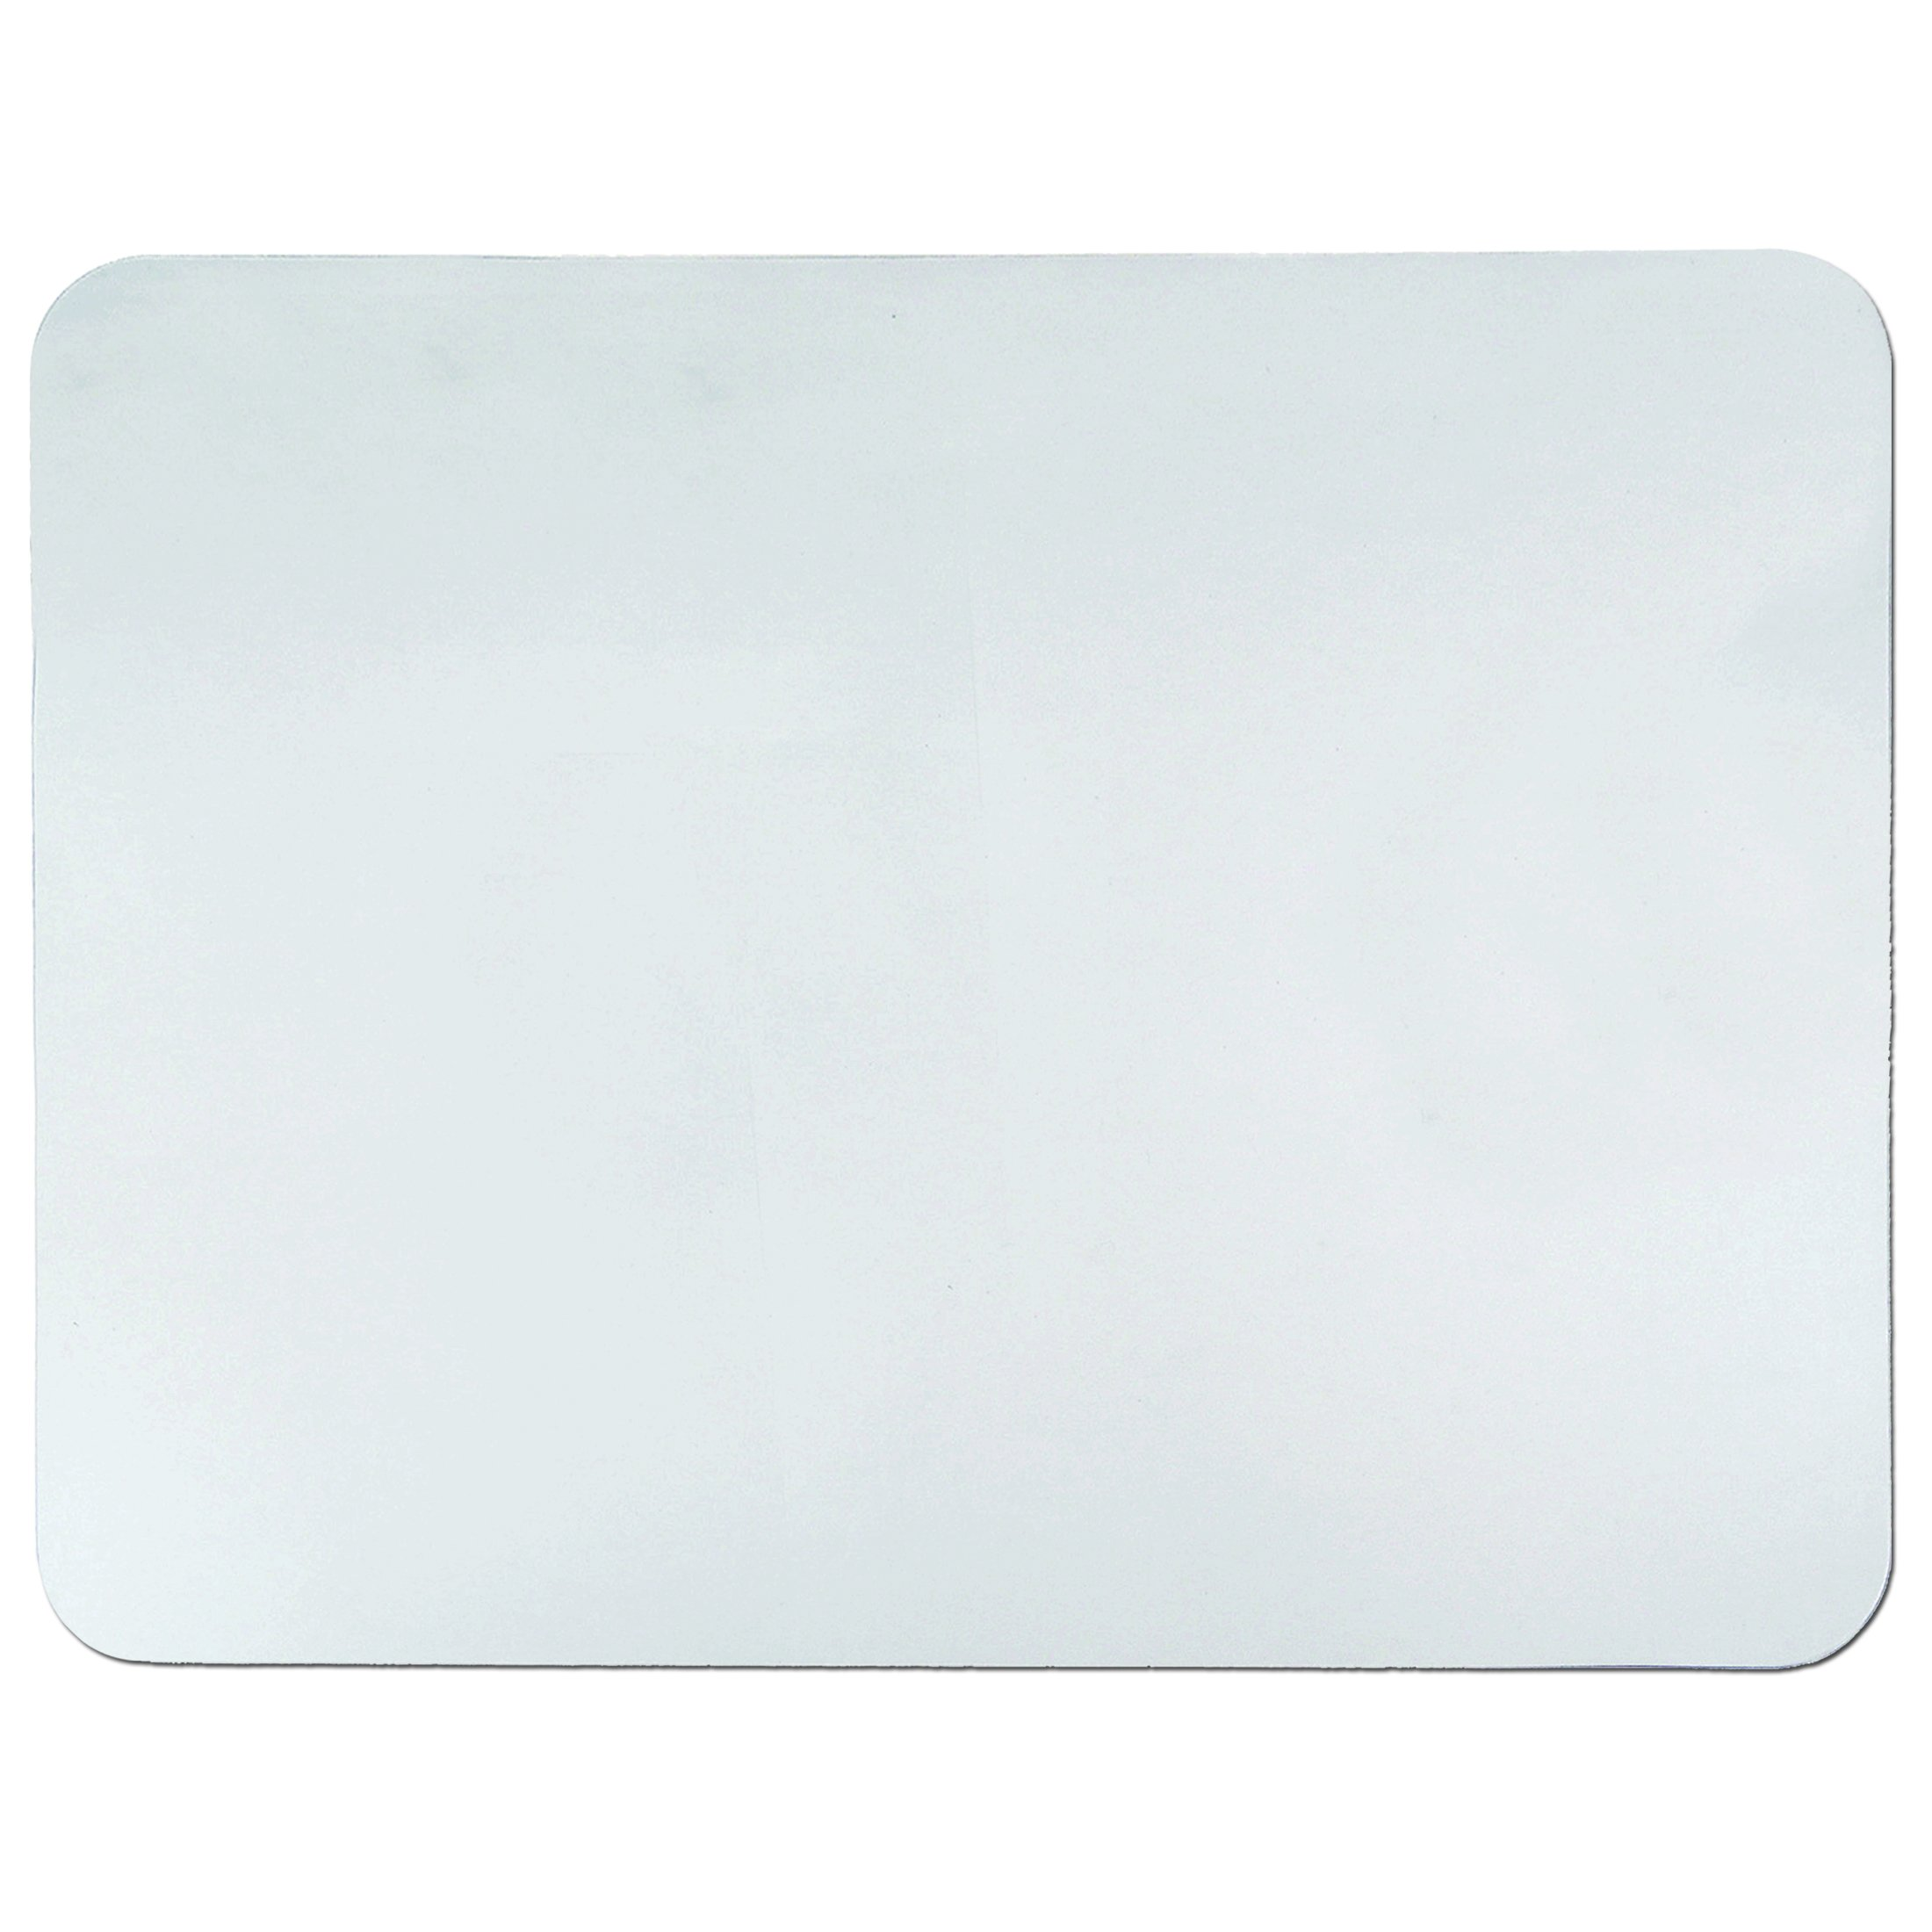 Artistic 17'' x 22'' Krystal View Clear Antimicrobial Desk Pad Organizer with Microban, Clear